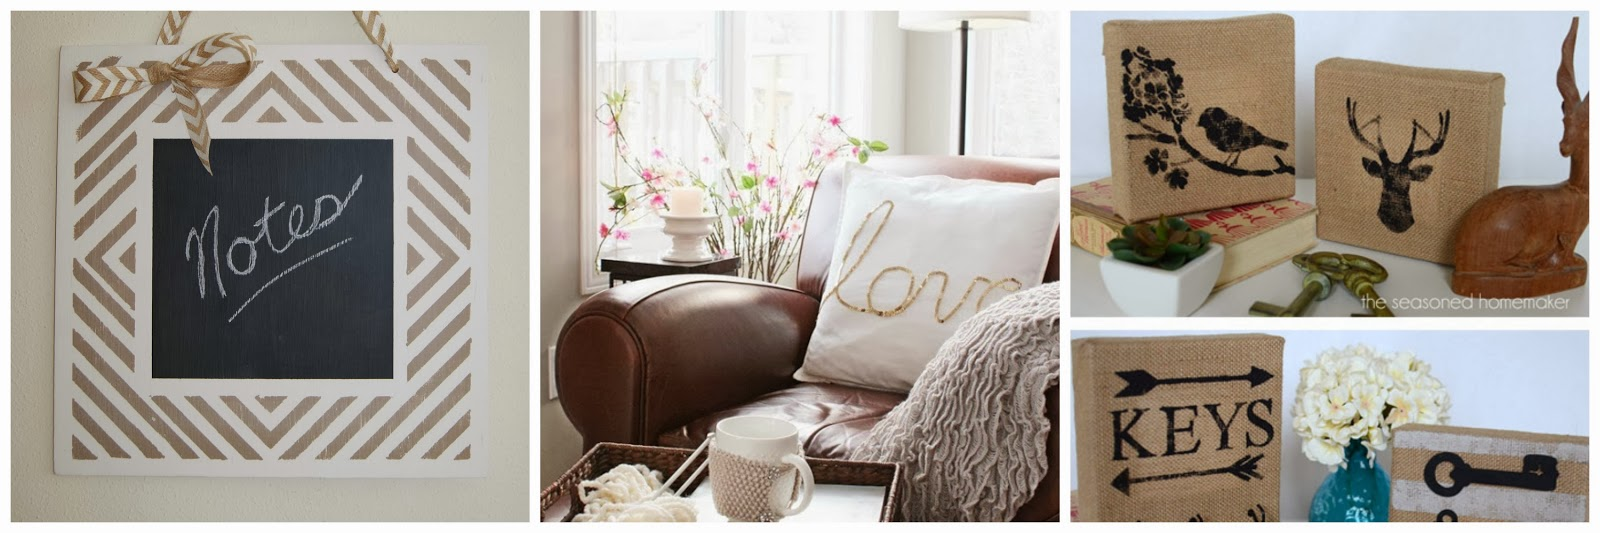 hd1 14 Beautiful Home Decor Projects 19